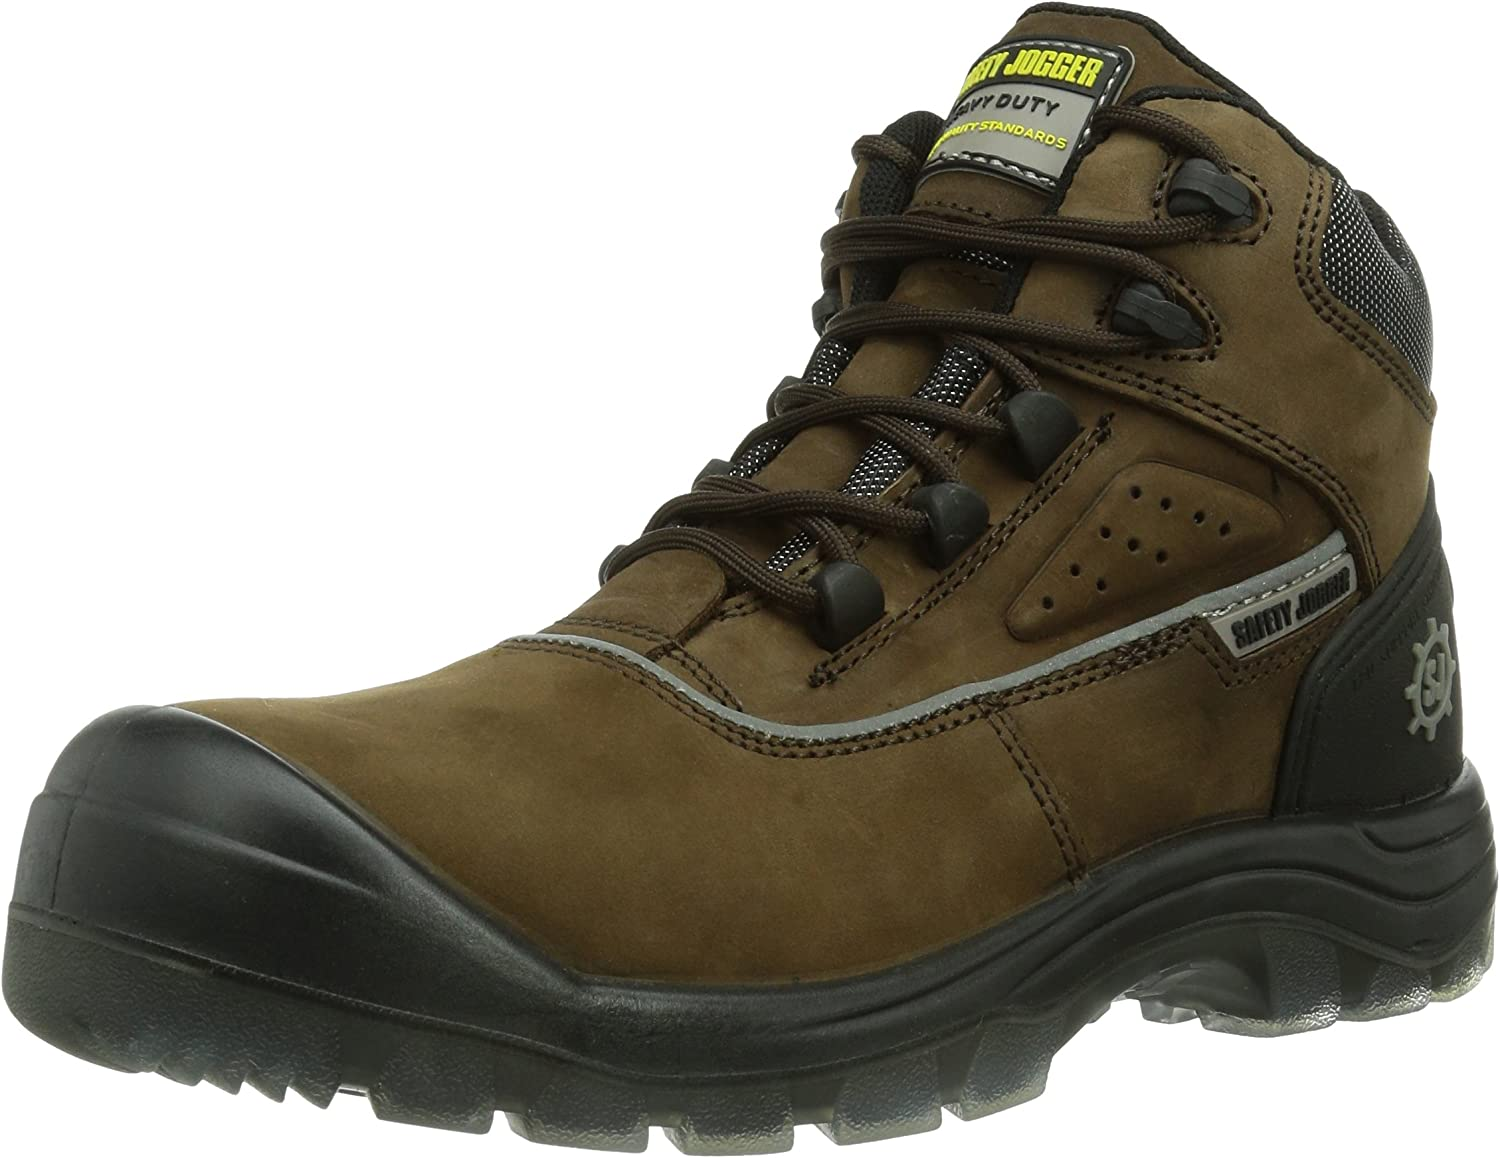 Safety Jogger Geos Men's Safety shoes, Brown (Brown 858), EU 45